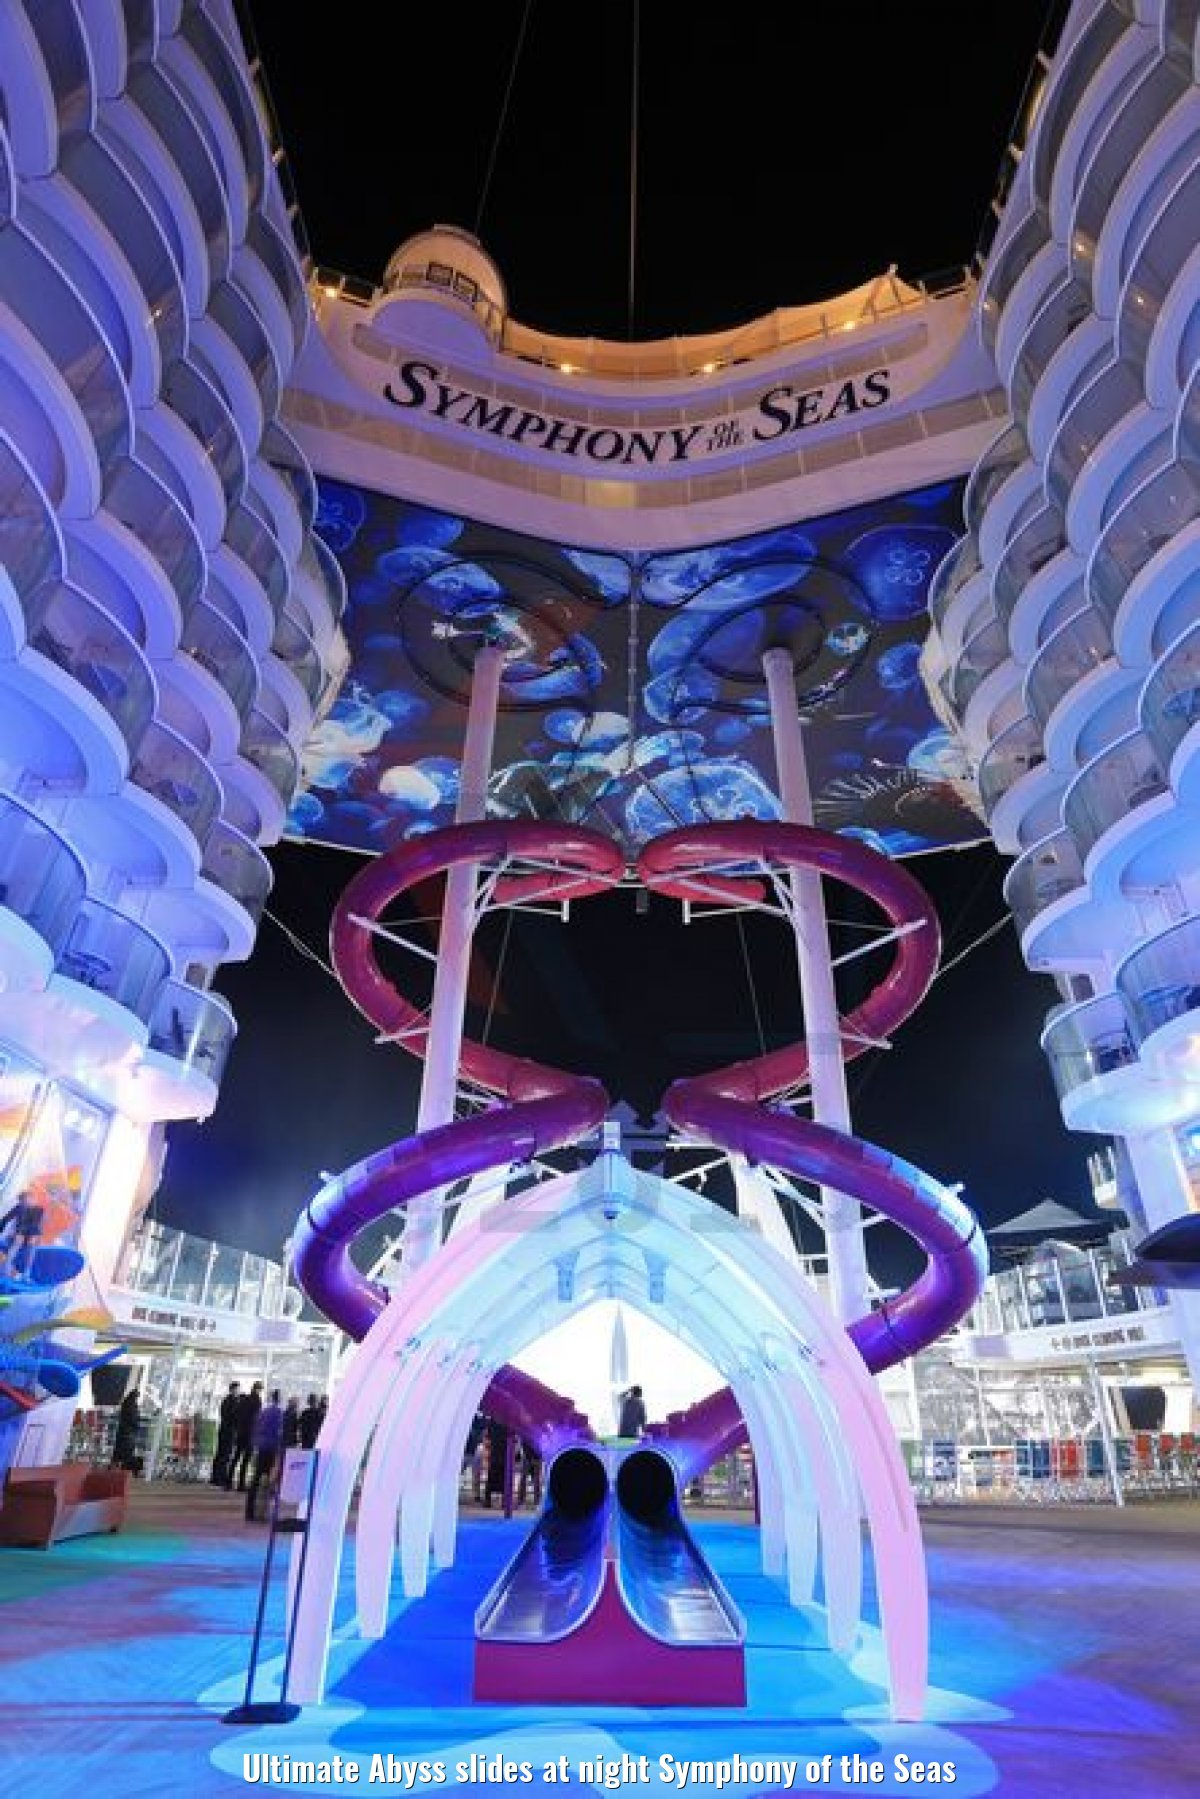 Ultimate Abyss slides at night Symphony of the Seas